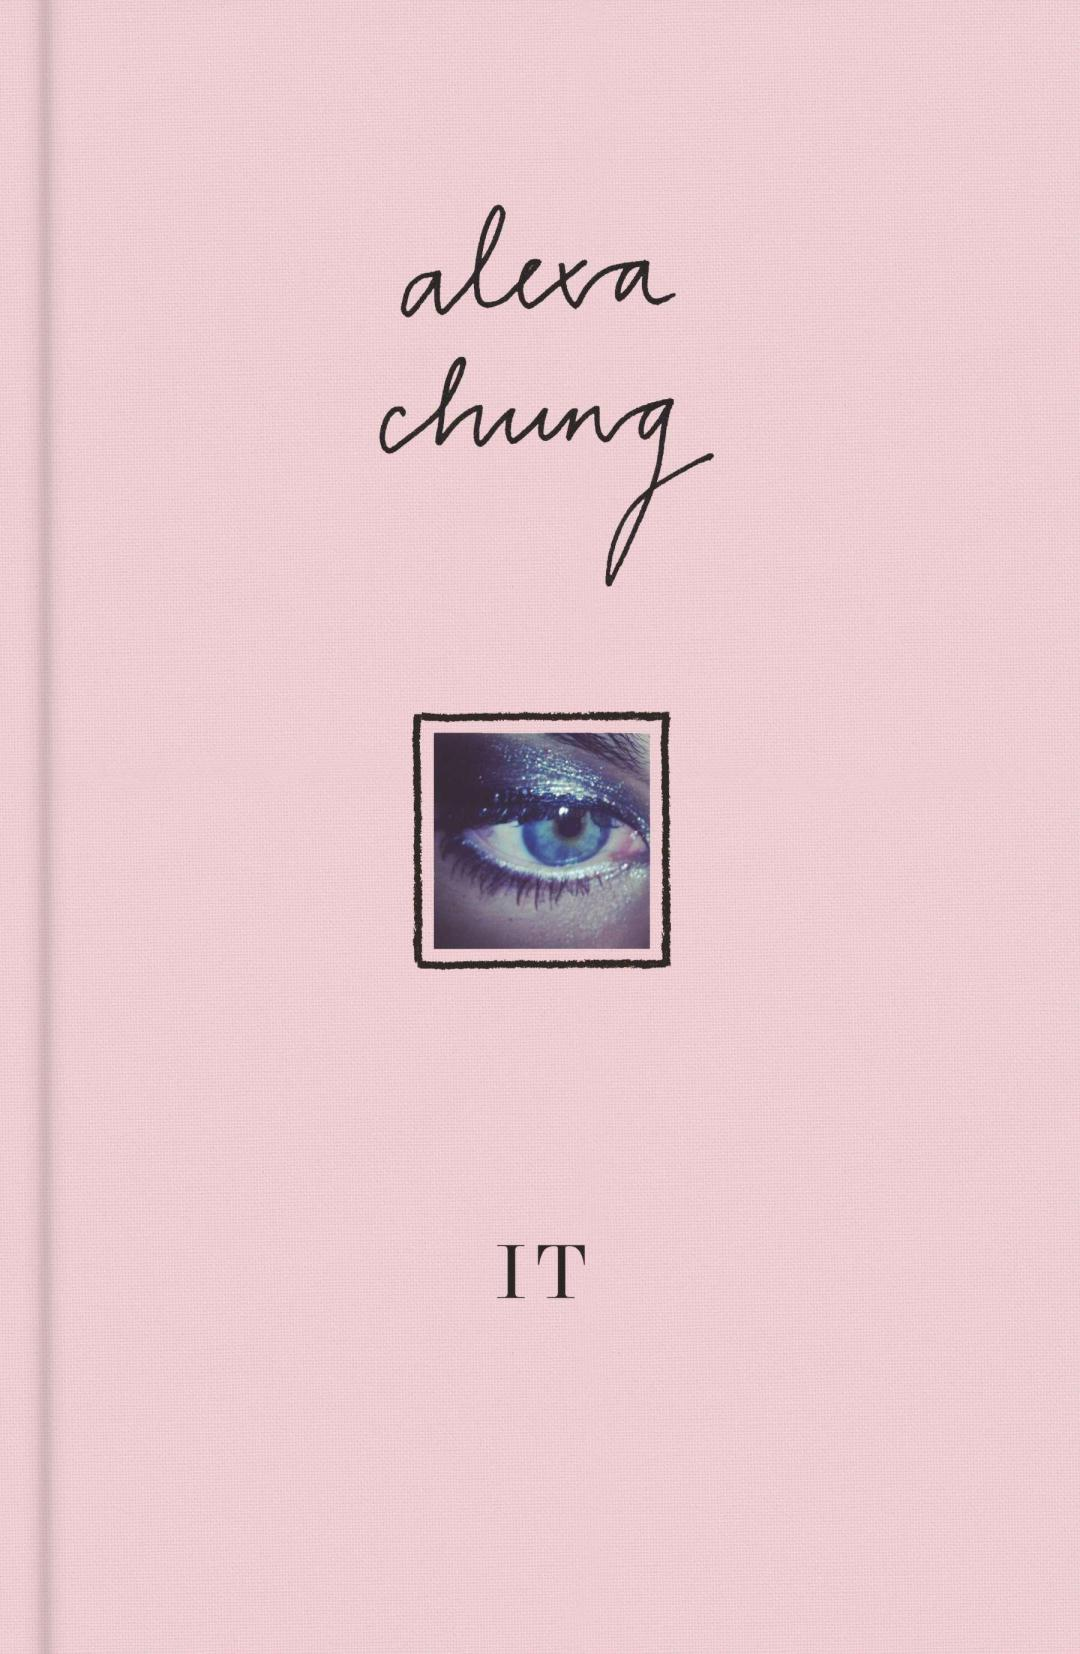 Female Biographies - It by Alexa Chung | Dutchie Love